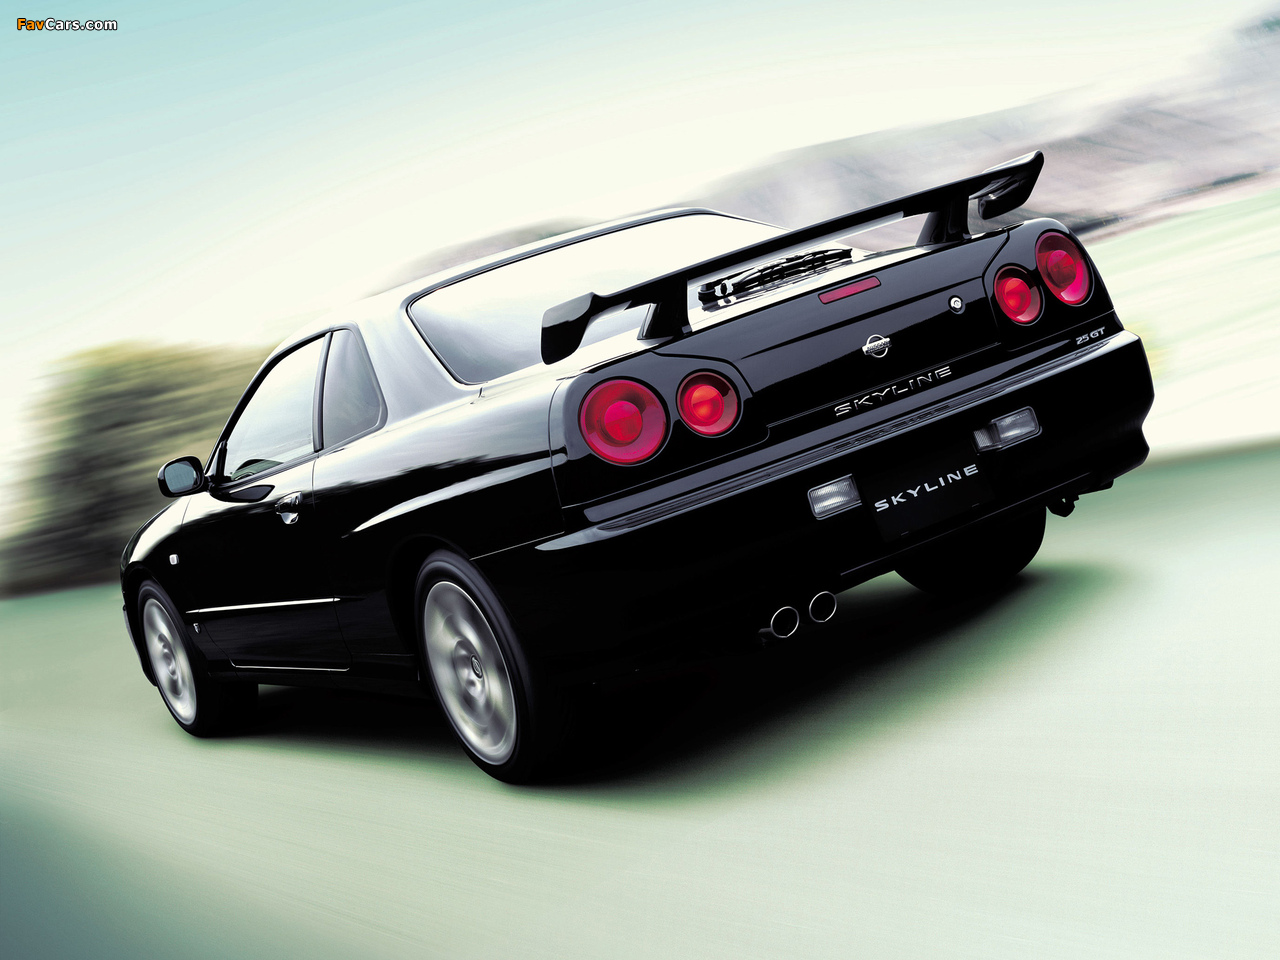 Nissan Skyline GT Turbo Coupe (R34) 2000–01 images (1280 x 960)